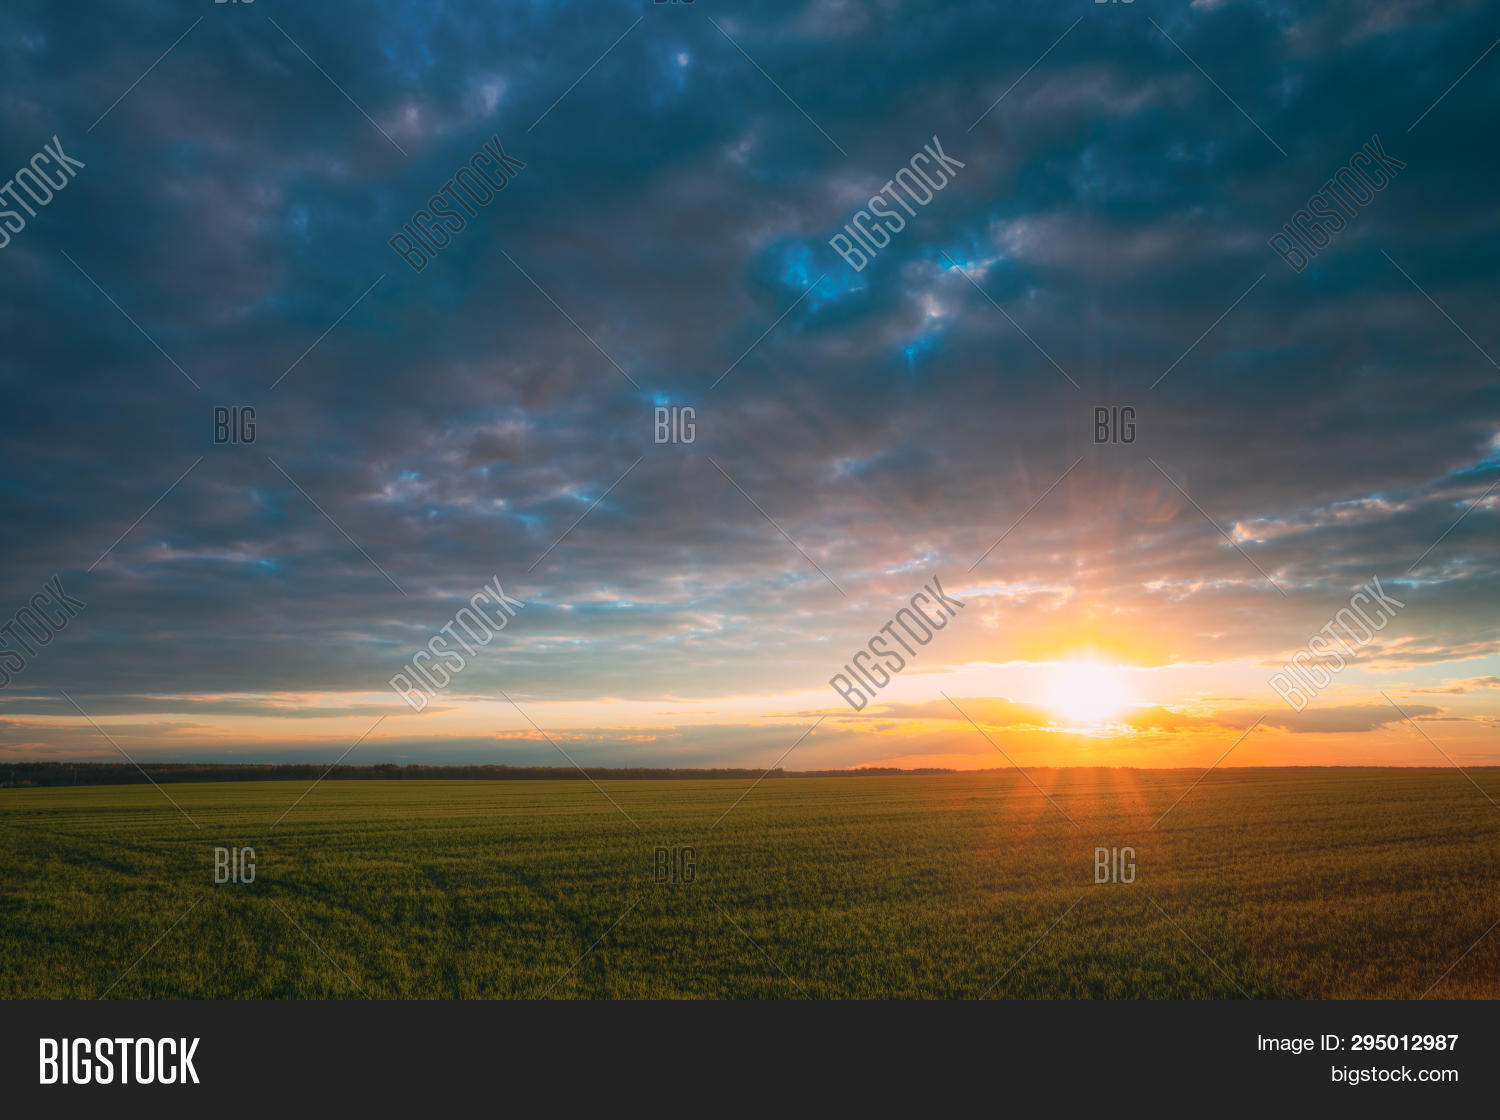 agriculture,beautiful,bright,cloud,colorful,colour,countryside,dawn,evening,farm,field,grass,green,ground,horizon,landscape,light,meadow,morning,nature,nobody,orange,outdoor,park,rural,scene,scenery,scenic,shine,sky,skyline,spring,summer,sun,sunlight,sunny,sunray,sunrise,sunset,sunshine,view